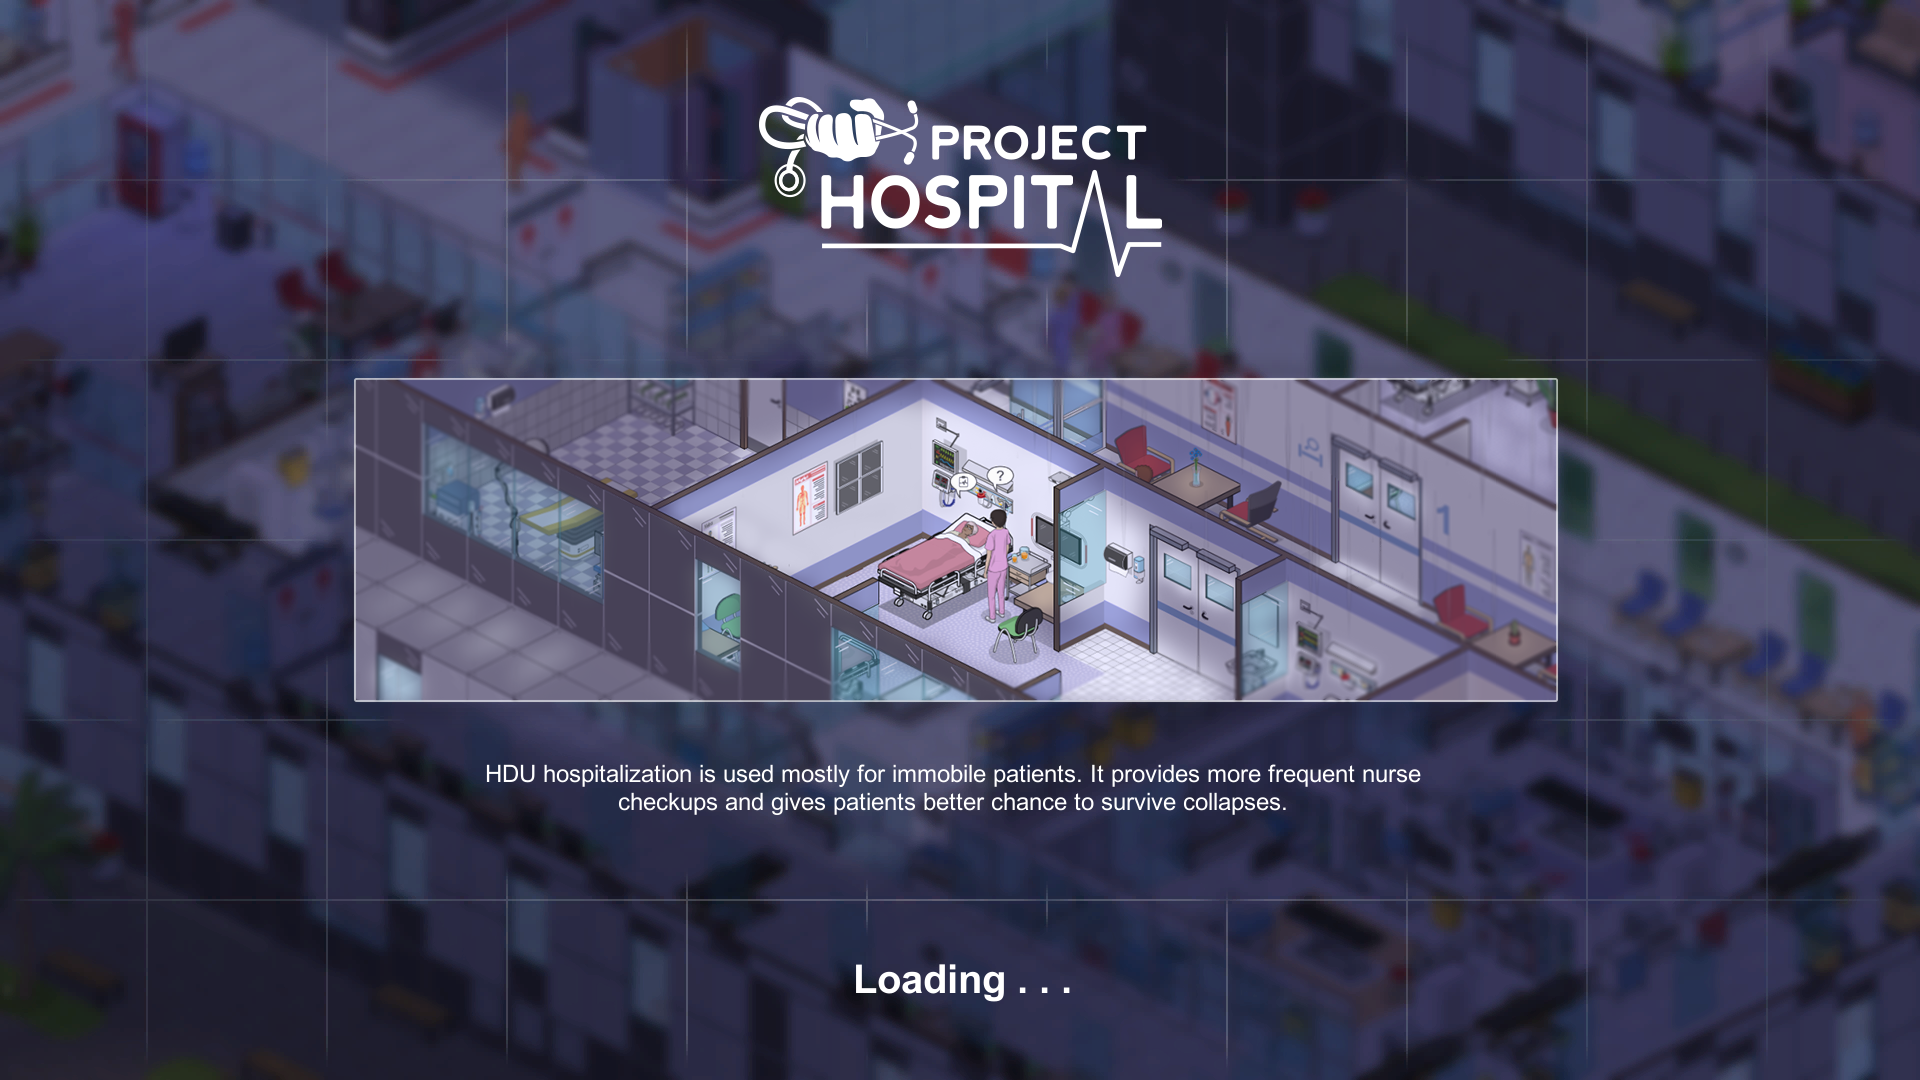 Project Hospital 1.1 release notes 2bdcf1461e59345b7b6546fef3f28f9c366b6979